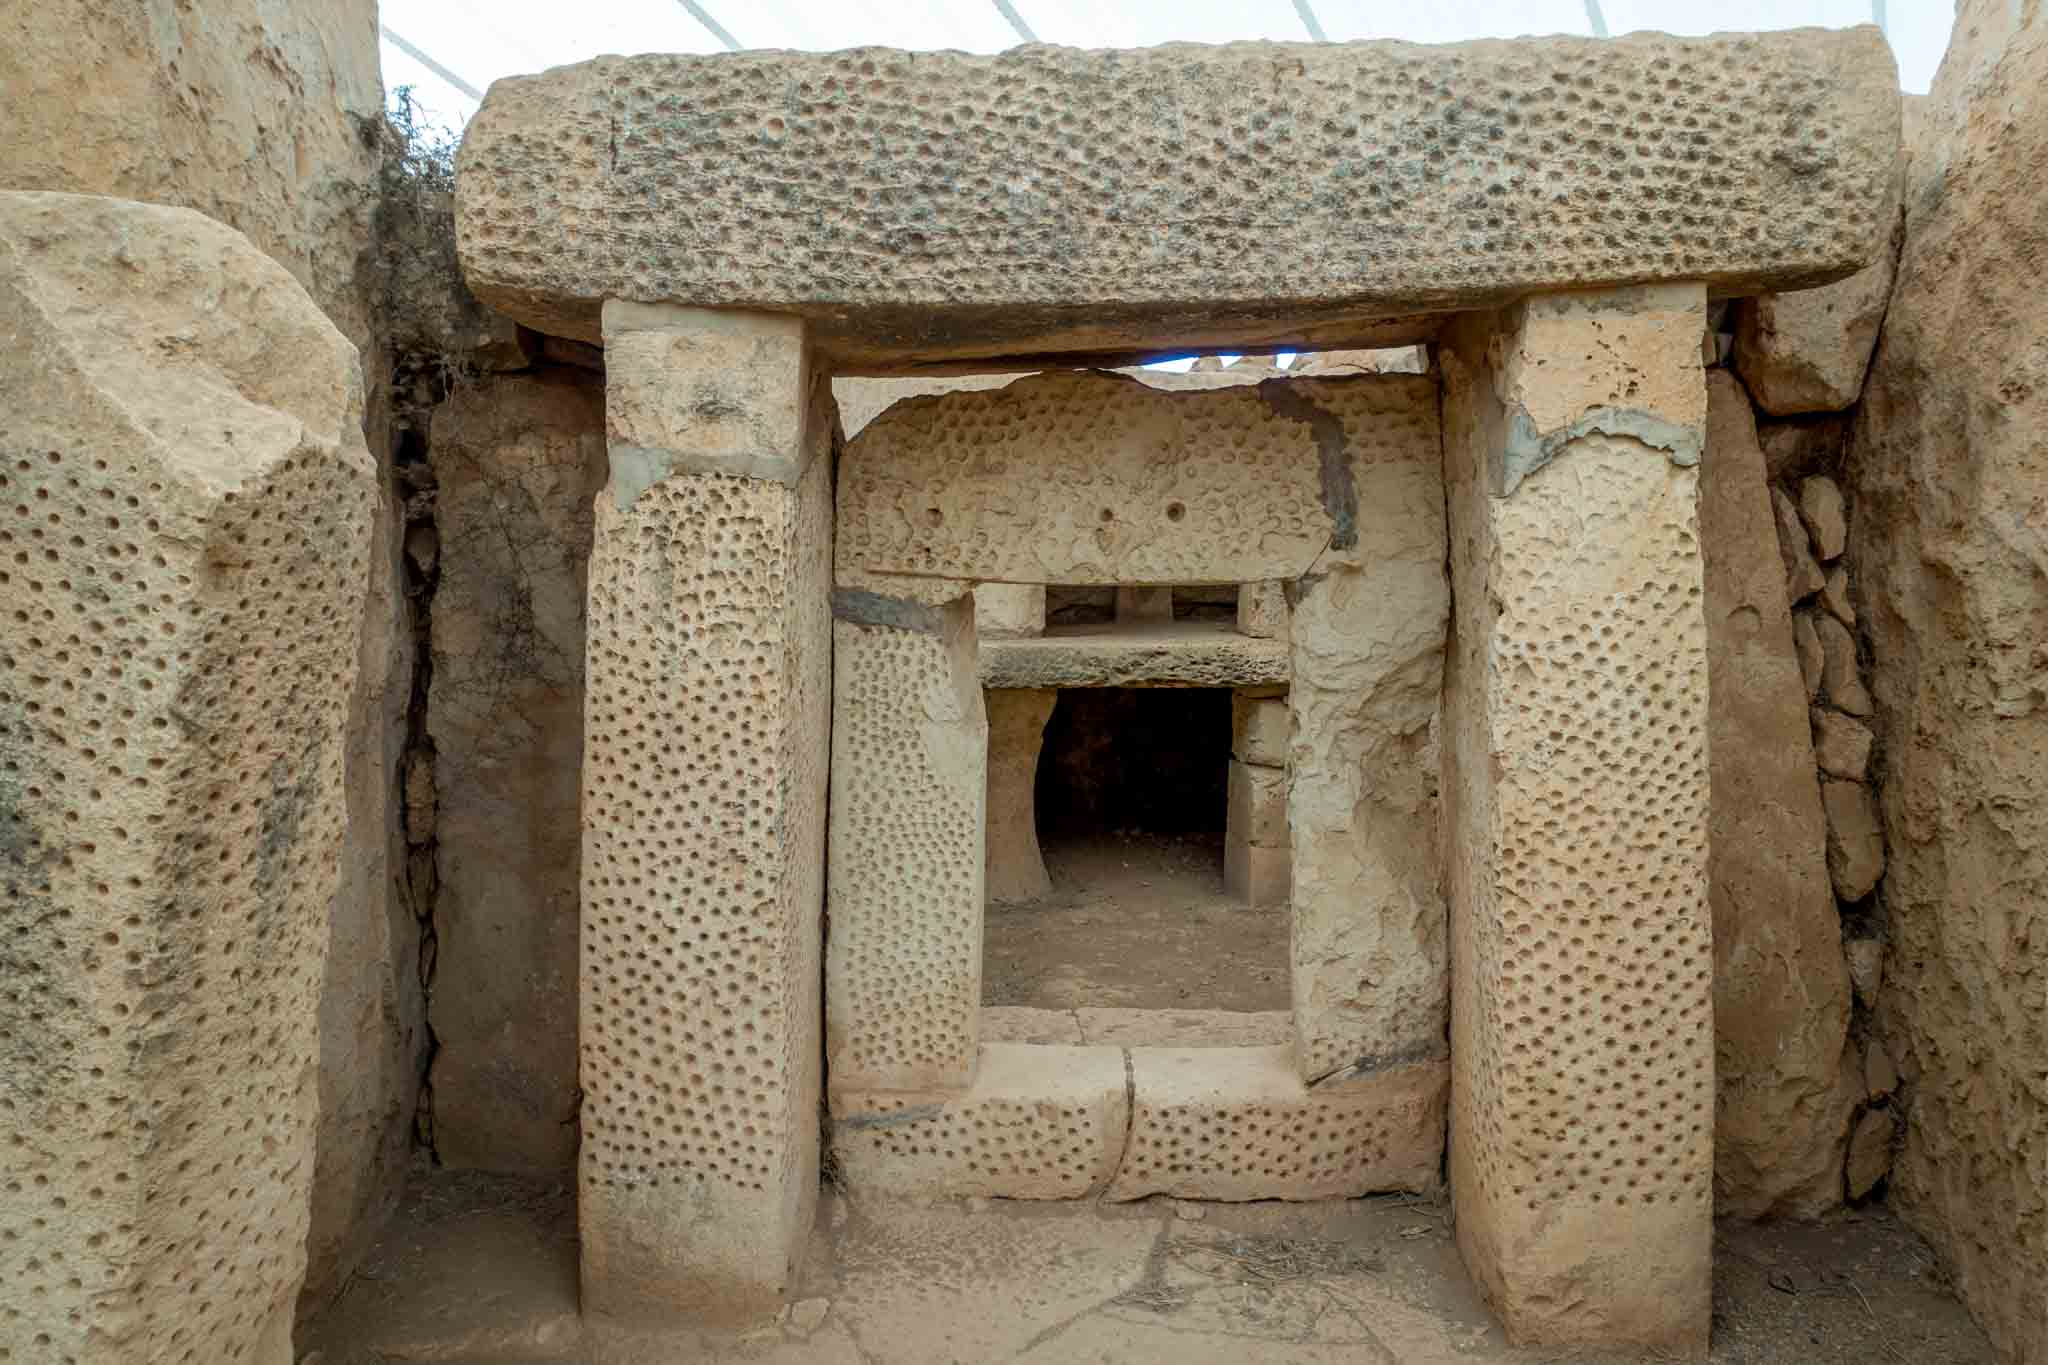 Hagar Qim, one of the Megalithic Temples of Malta